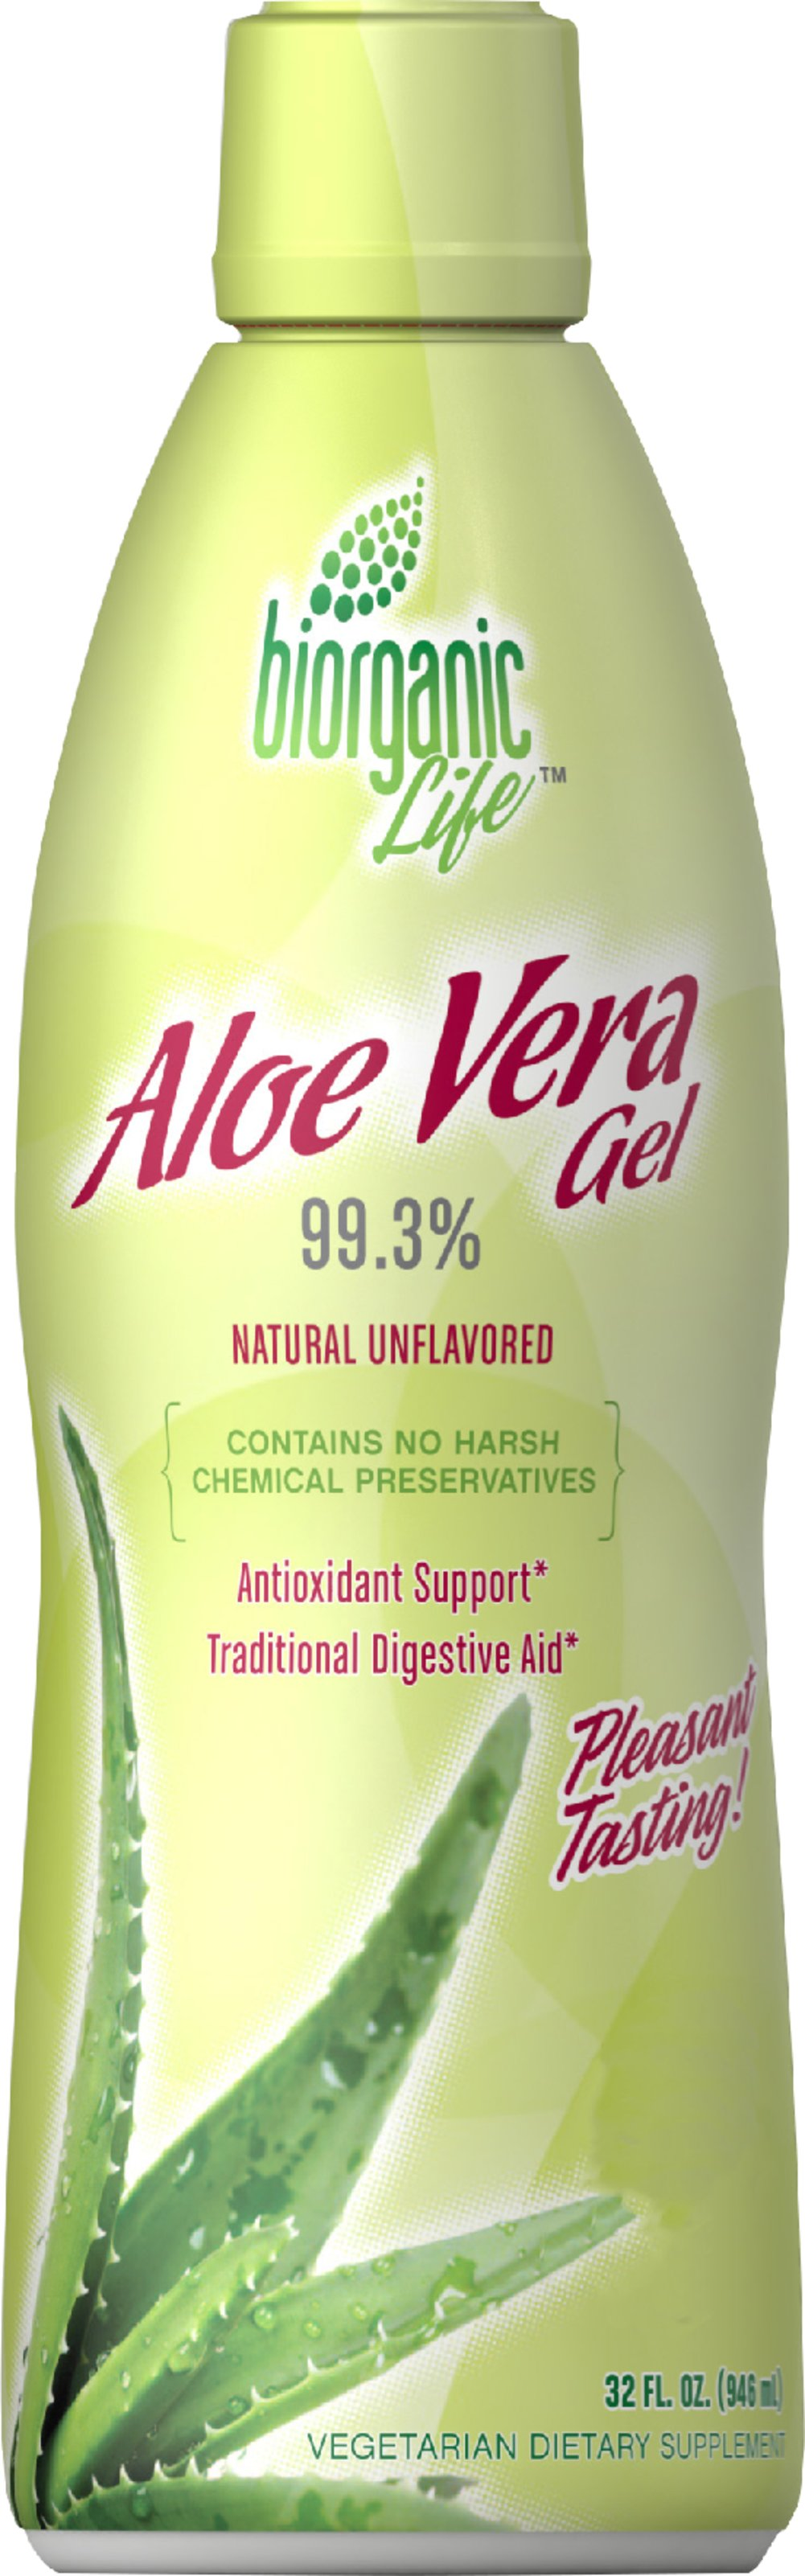 Aloe Vera Gel Drink 99.3% <p>Contributes to well-being**</p>  <p>Includes important vitamins, minerals and other important nutrients</p>  <p>Liquid formulas mix readily into your favorite drinks for easy consumption</p>  <p>Helps promote healthy digestive function**</p>  <p>Aloe Vera contains a host of nutrients, including vitamins, minerals, amino acids, polysaccharides and phenolic compounds to promote overall well-being.**</p> 32 fl